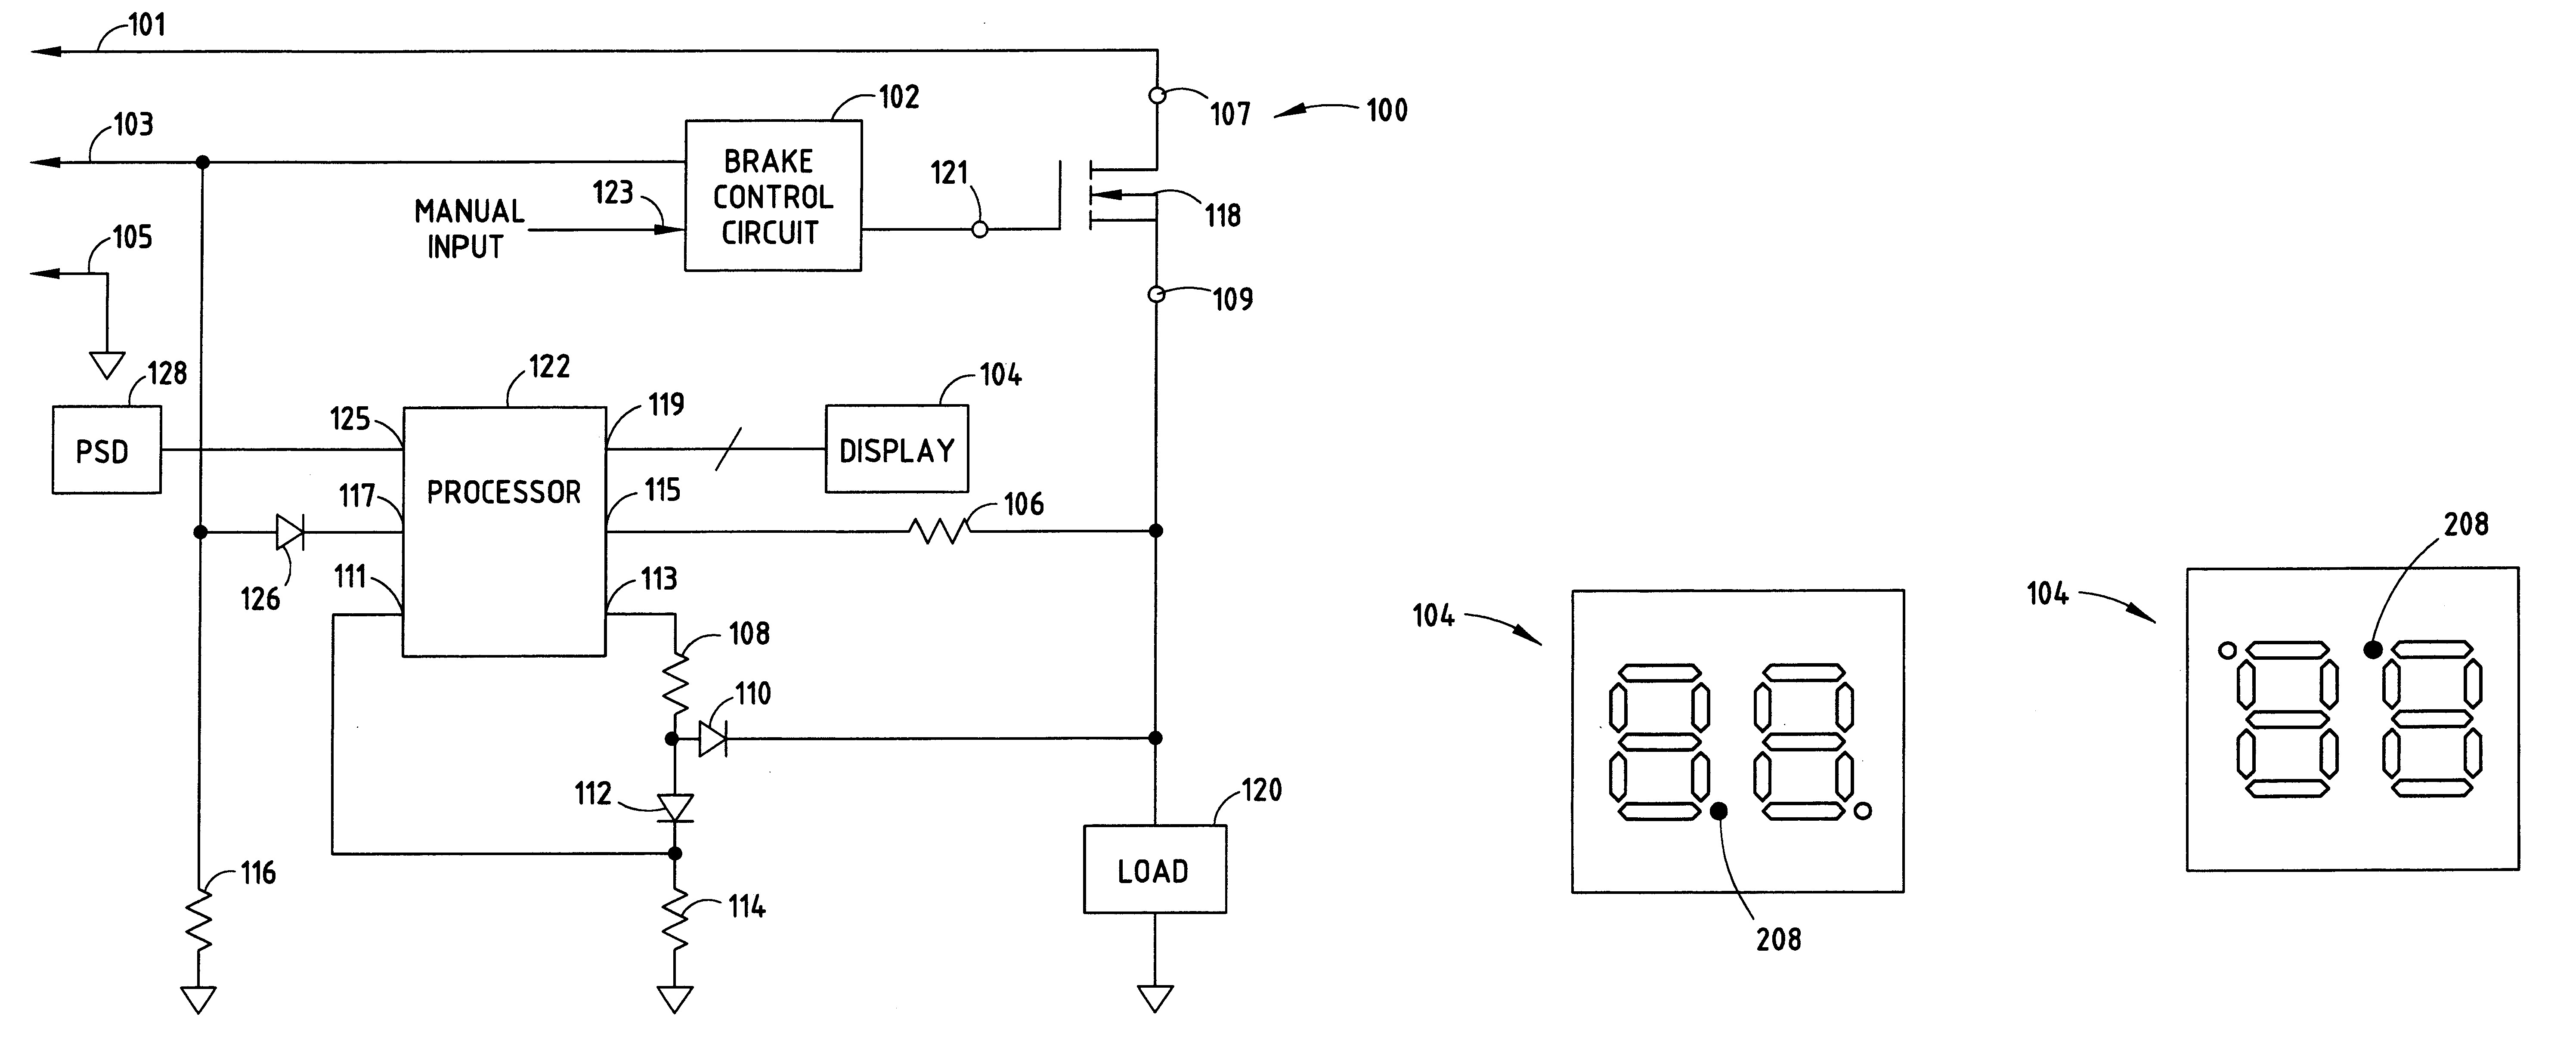 Patent US And Trailer Brake Control Wiring Diagram With Controller